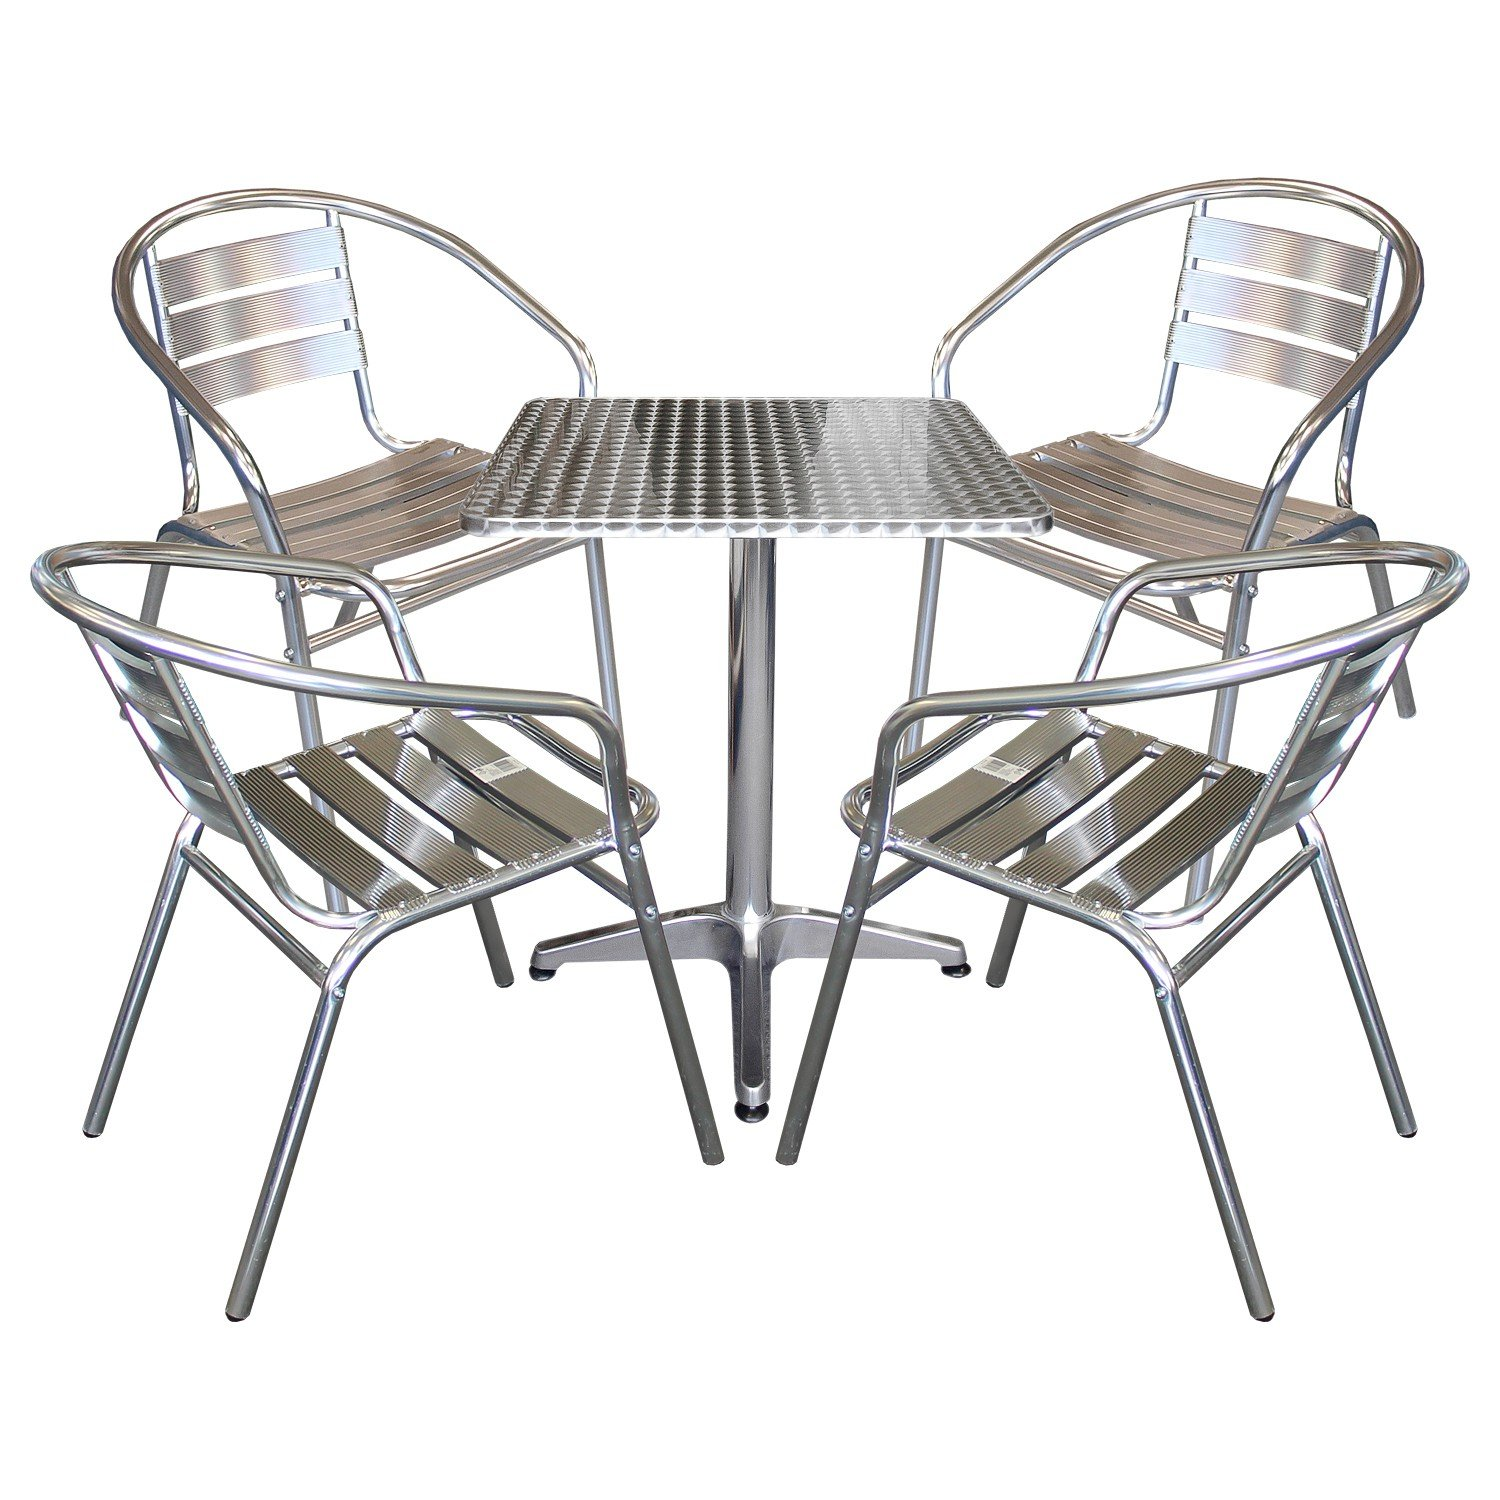 5tlg balkonm bel terrassenm bel bistro set 4x aluminium bistrostuhl stapelstuhl bistrotisch. Black Bedroom Furniture Sets. Home Design Ideas